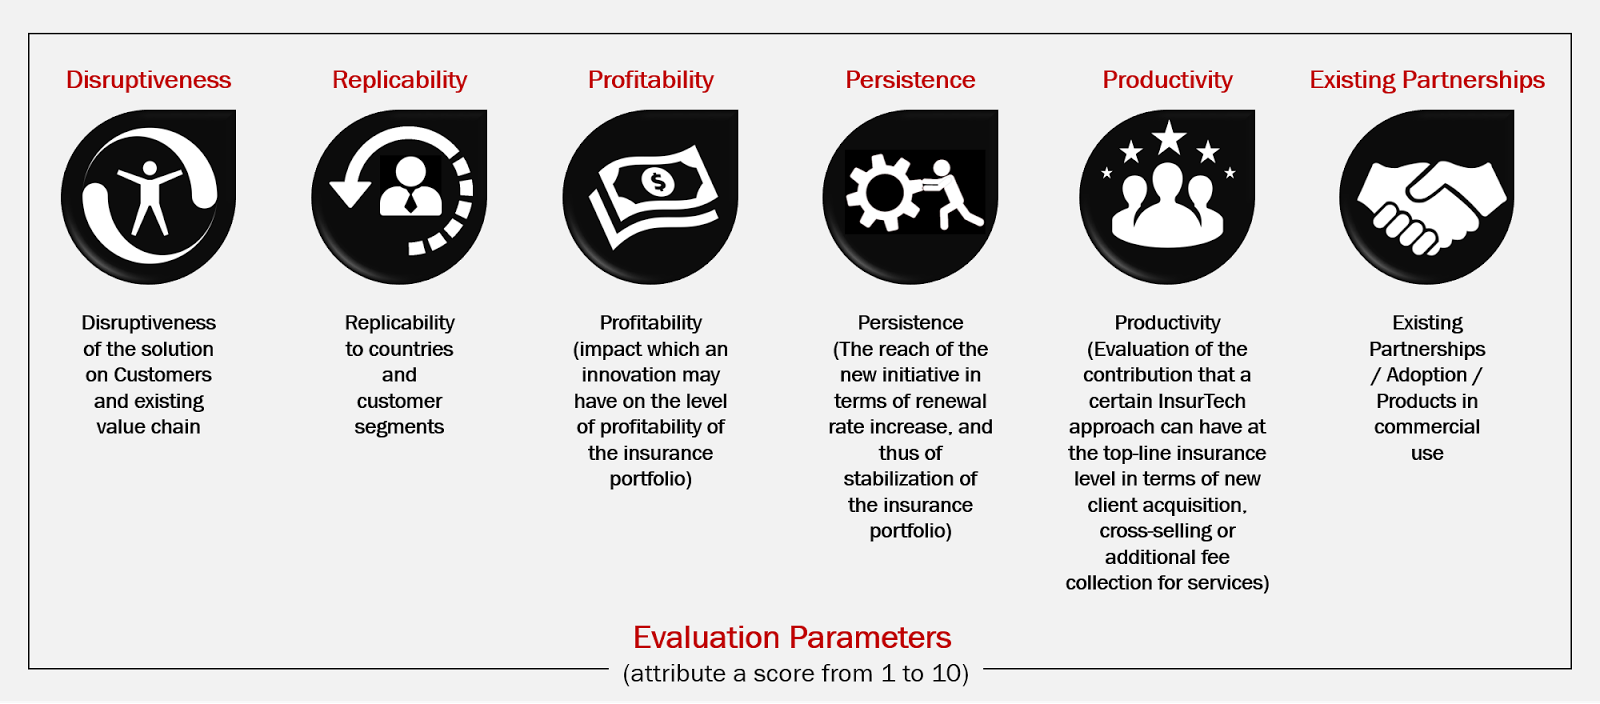 evaluation-parameters.png